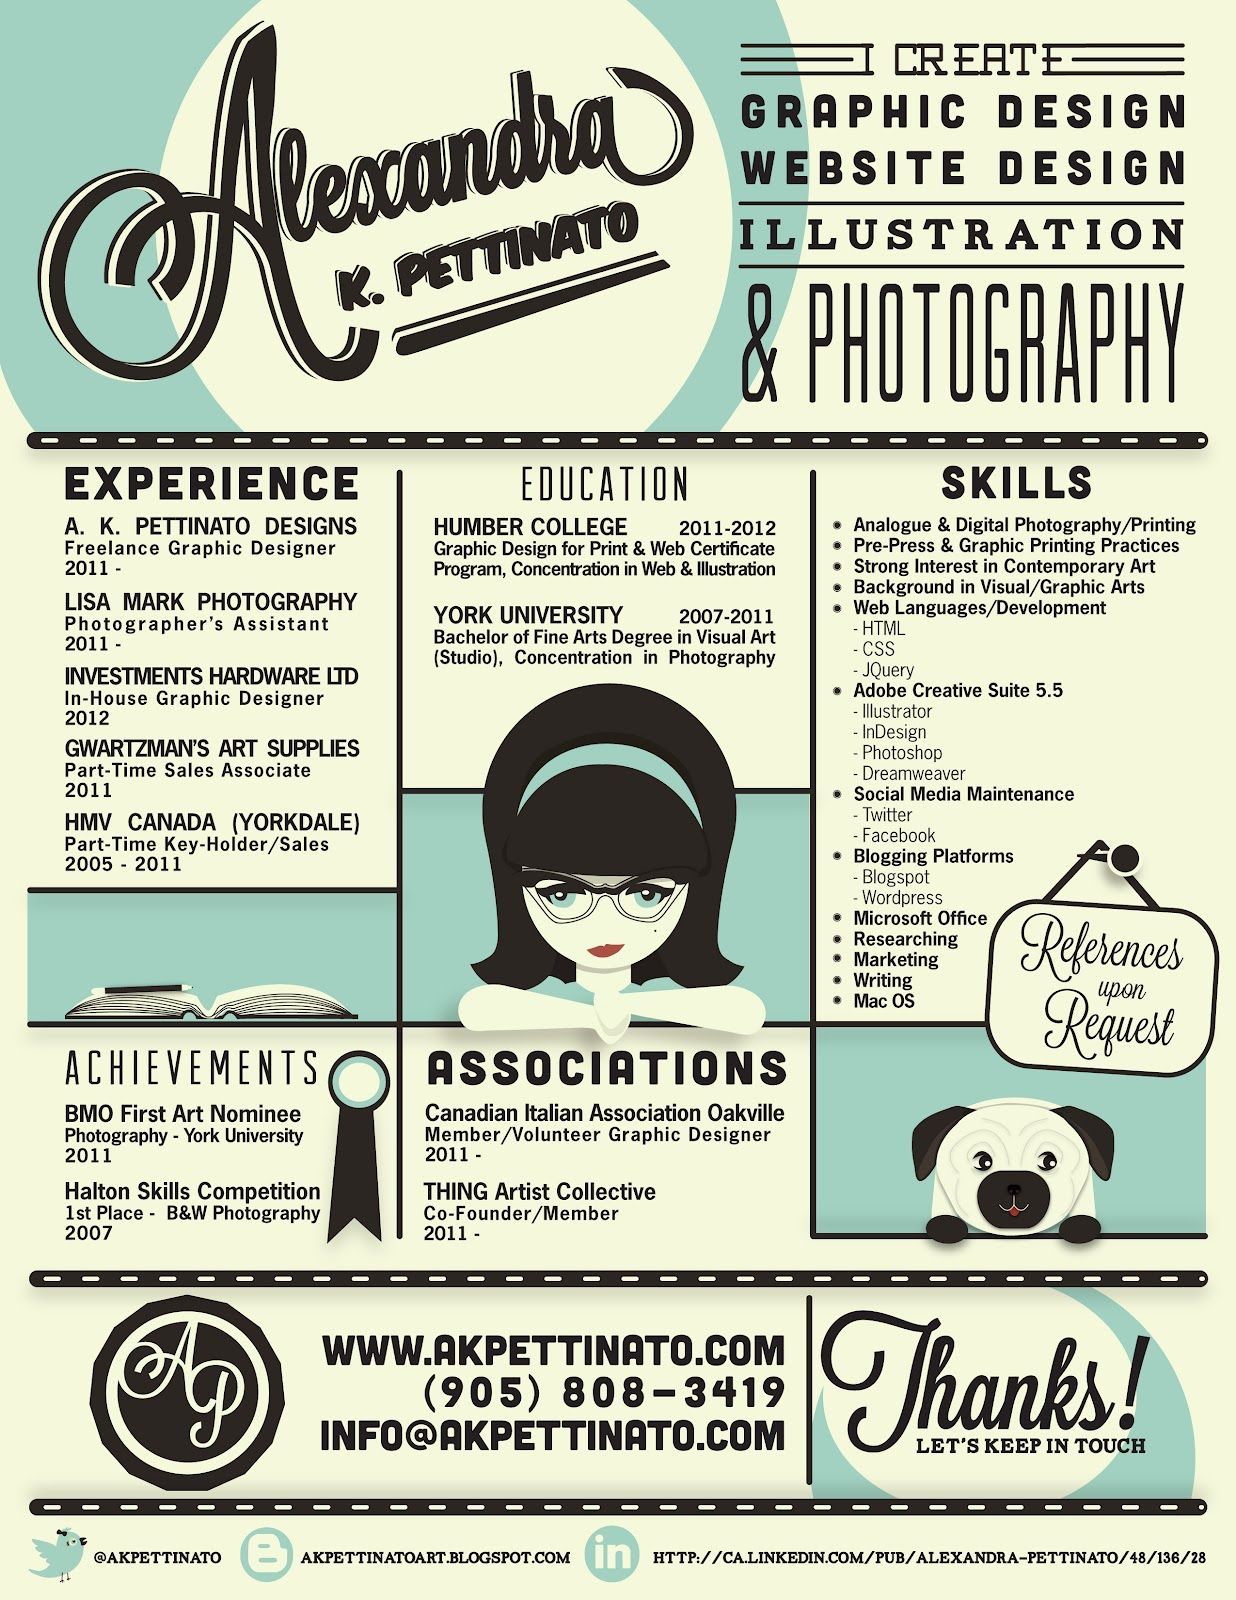 best images about creative cvs creative 17 best images about creative cvs creative infographic resume and creative resume